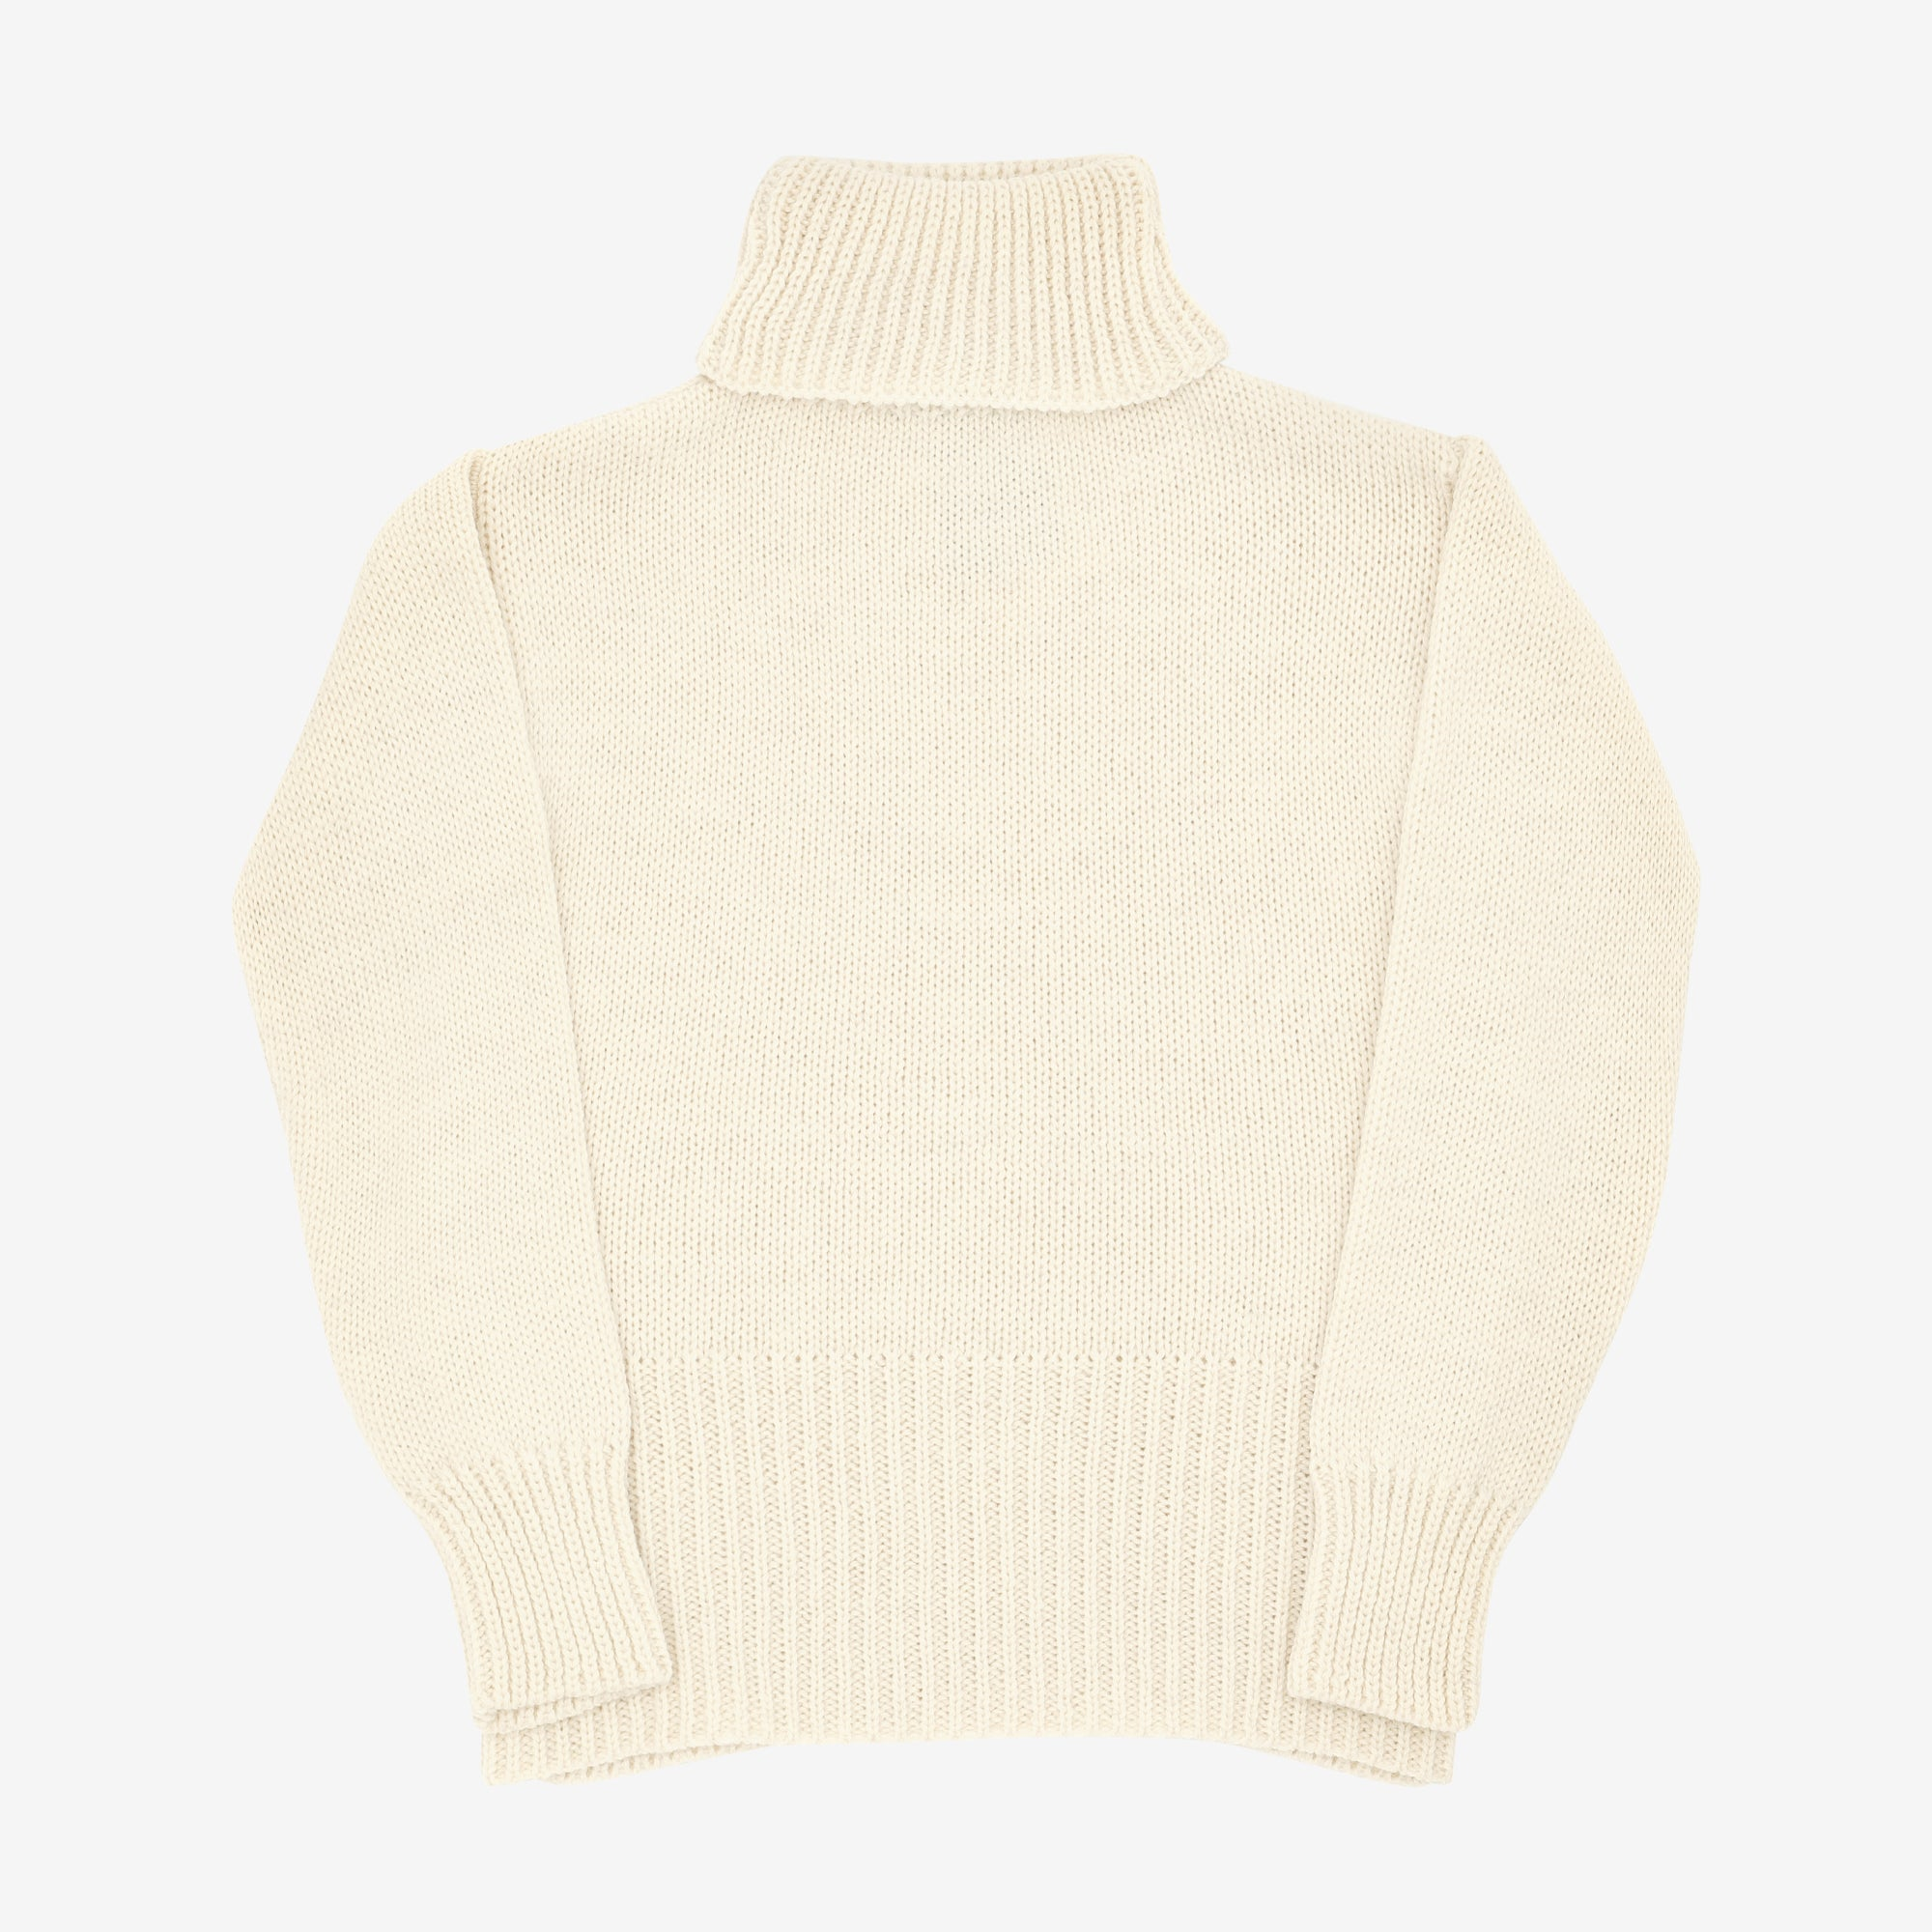 Highland 2000 Turtle Neck Knitted Sweater